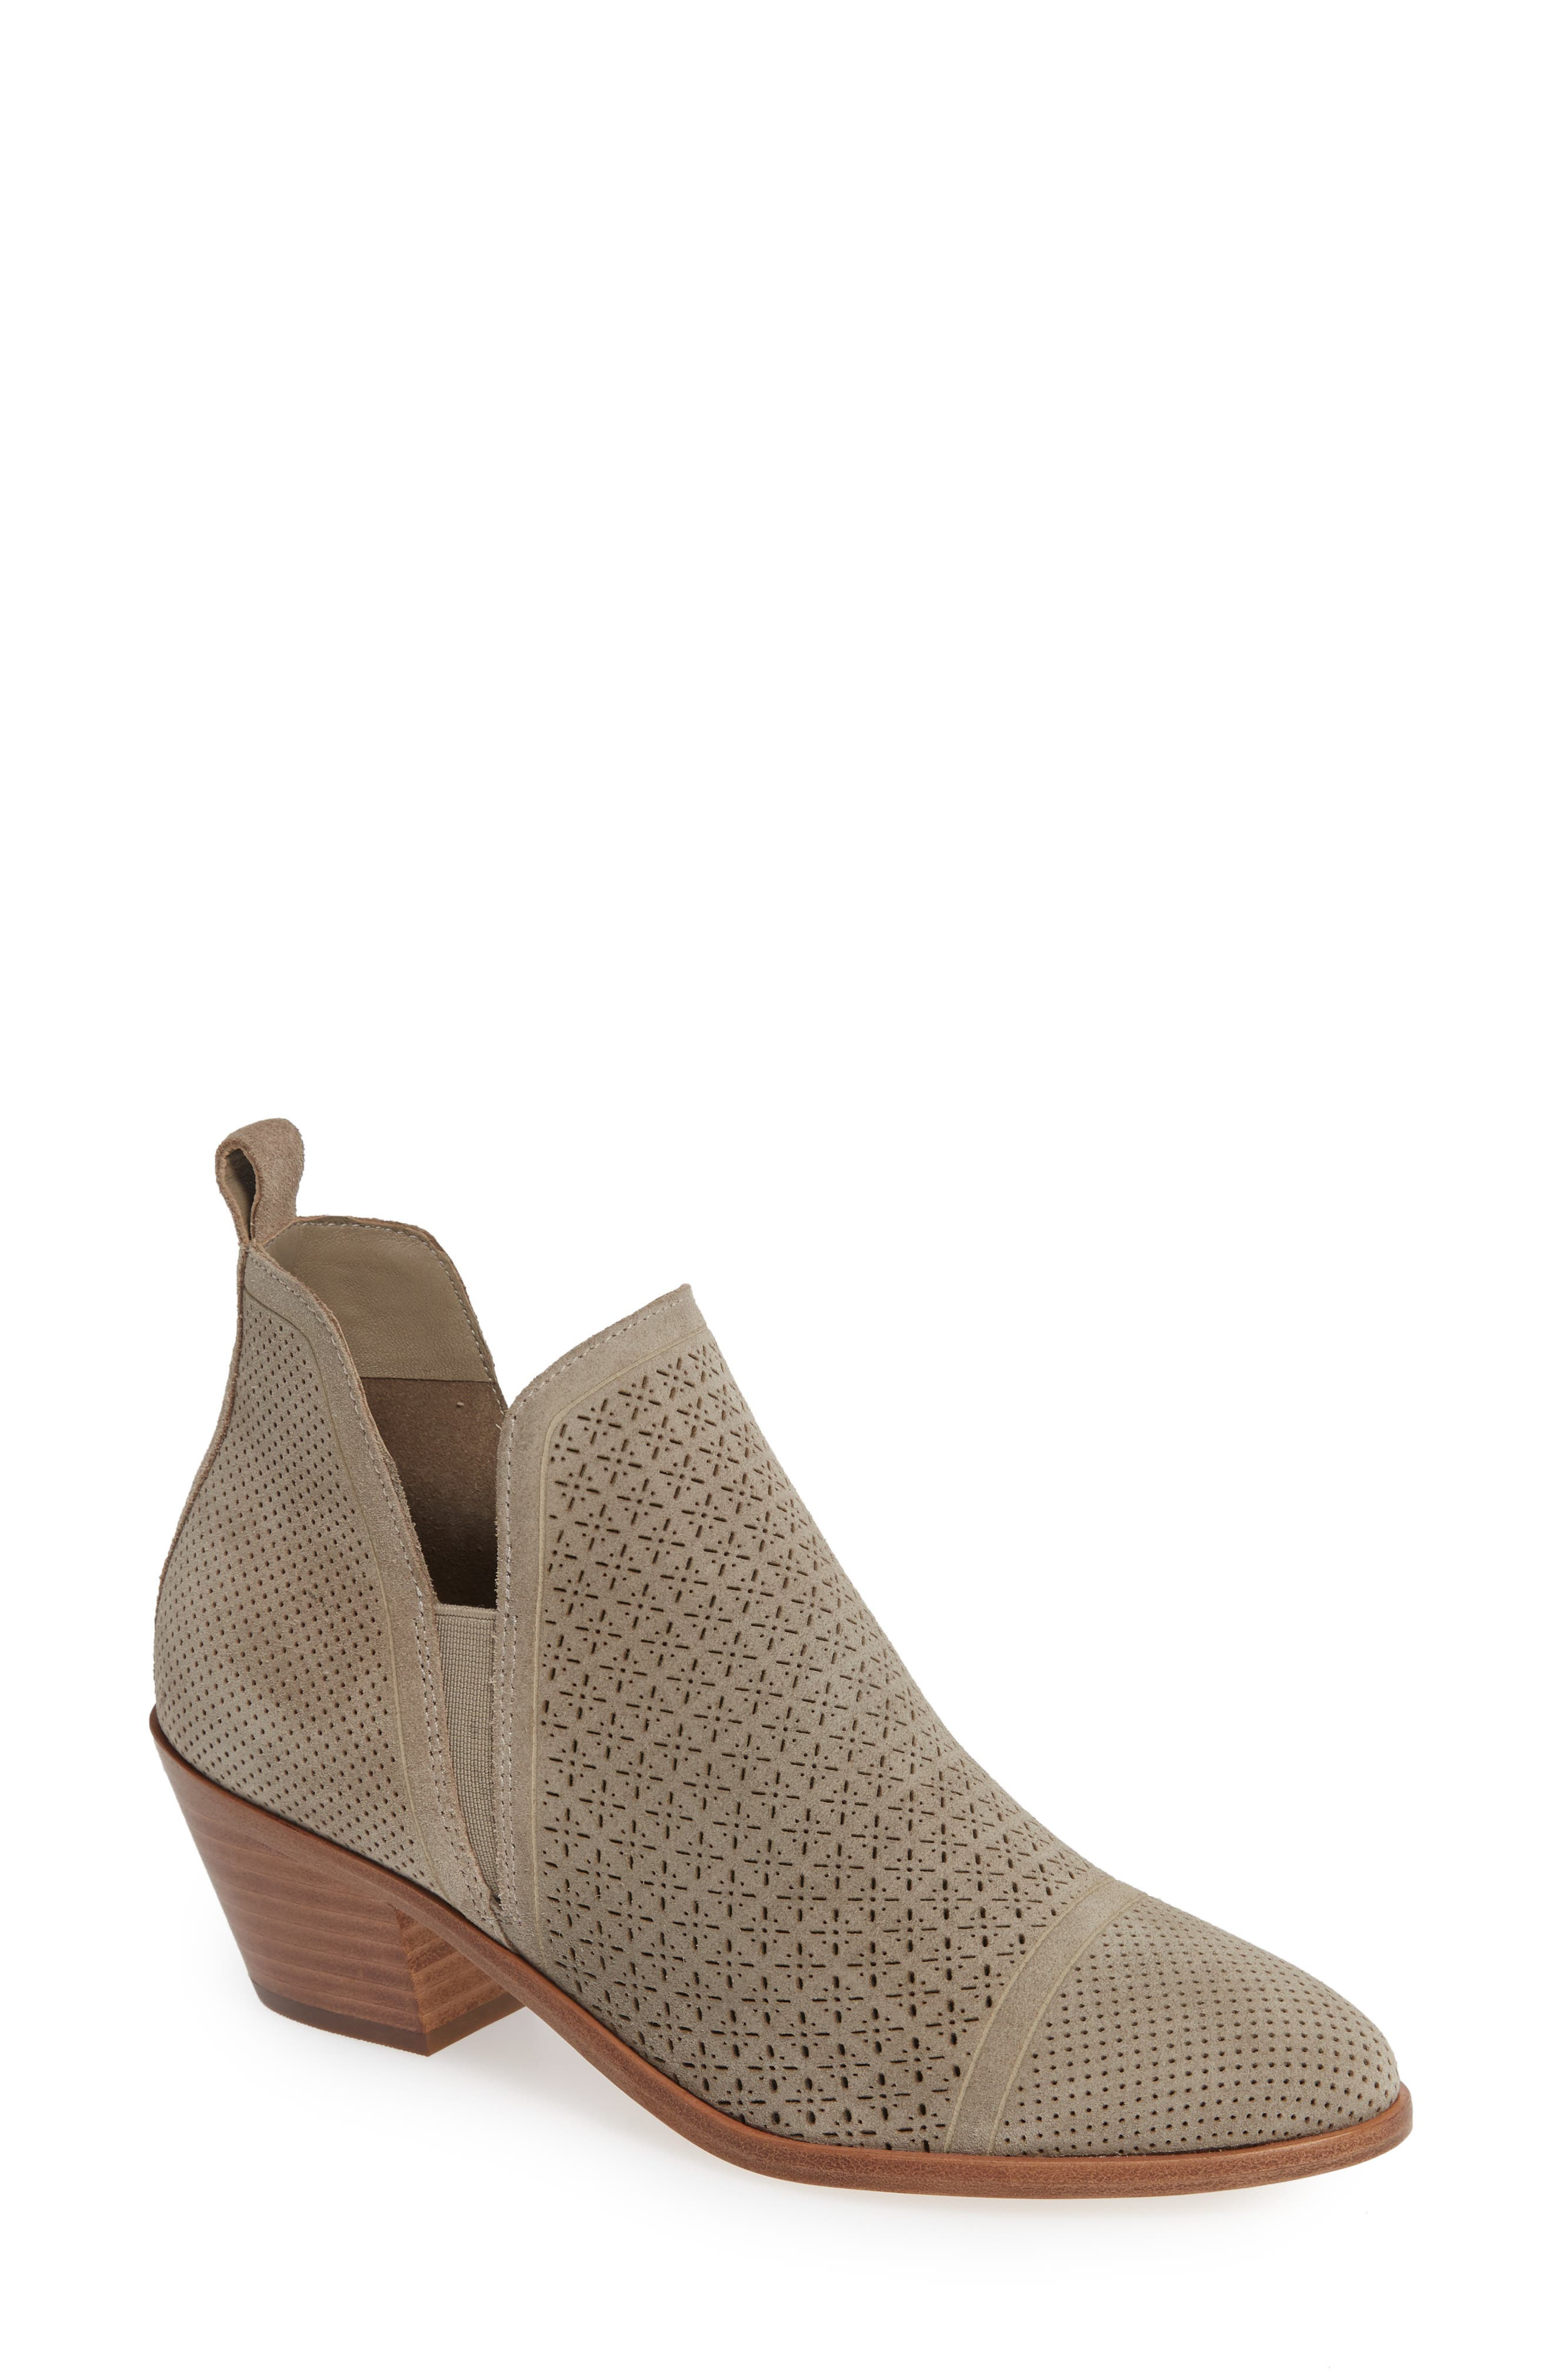 Sigerson Morrison Perforated Western Bootie, 0. - Grey